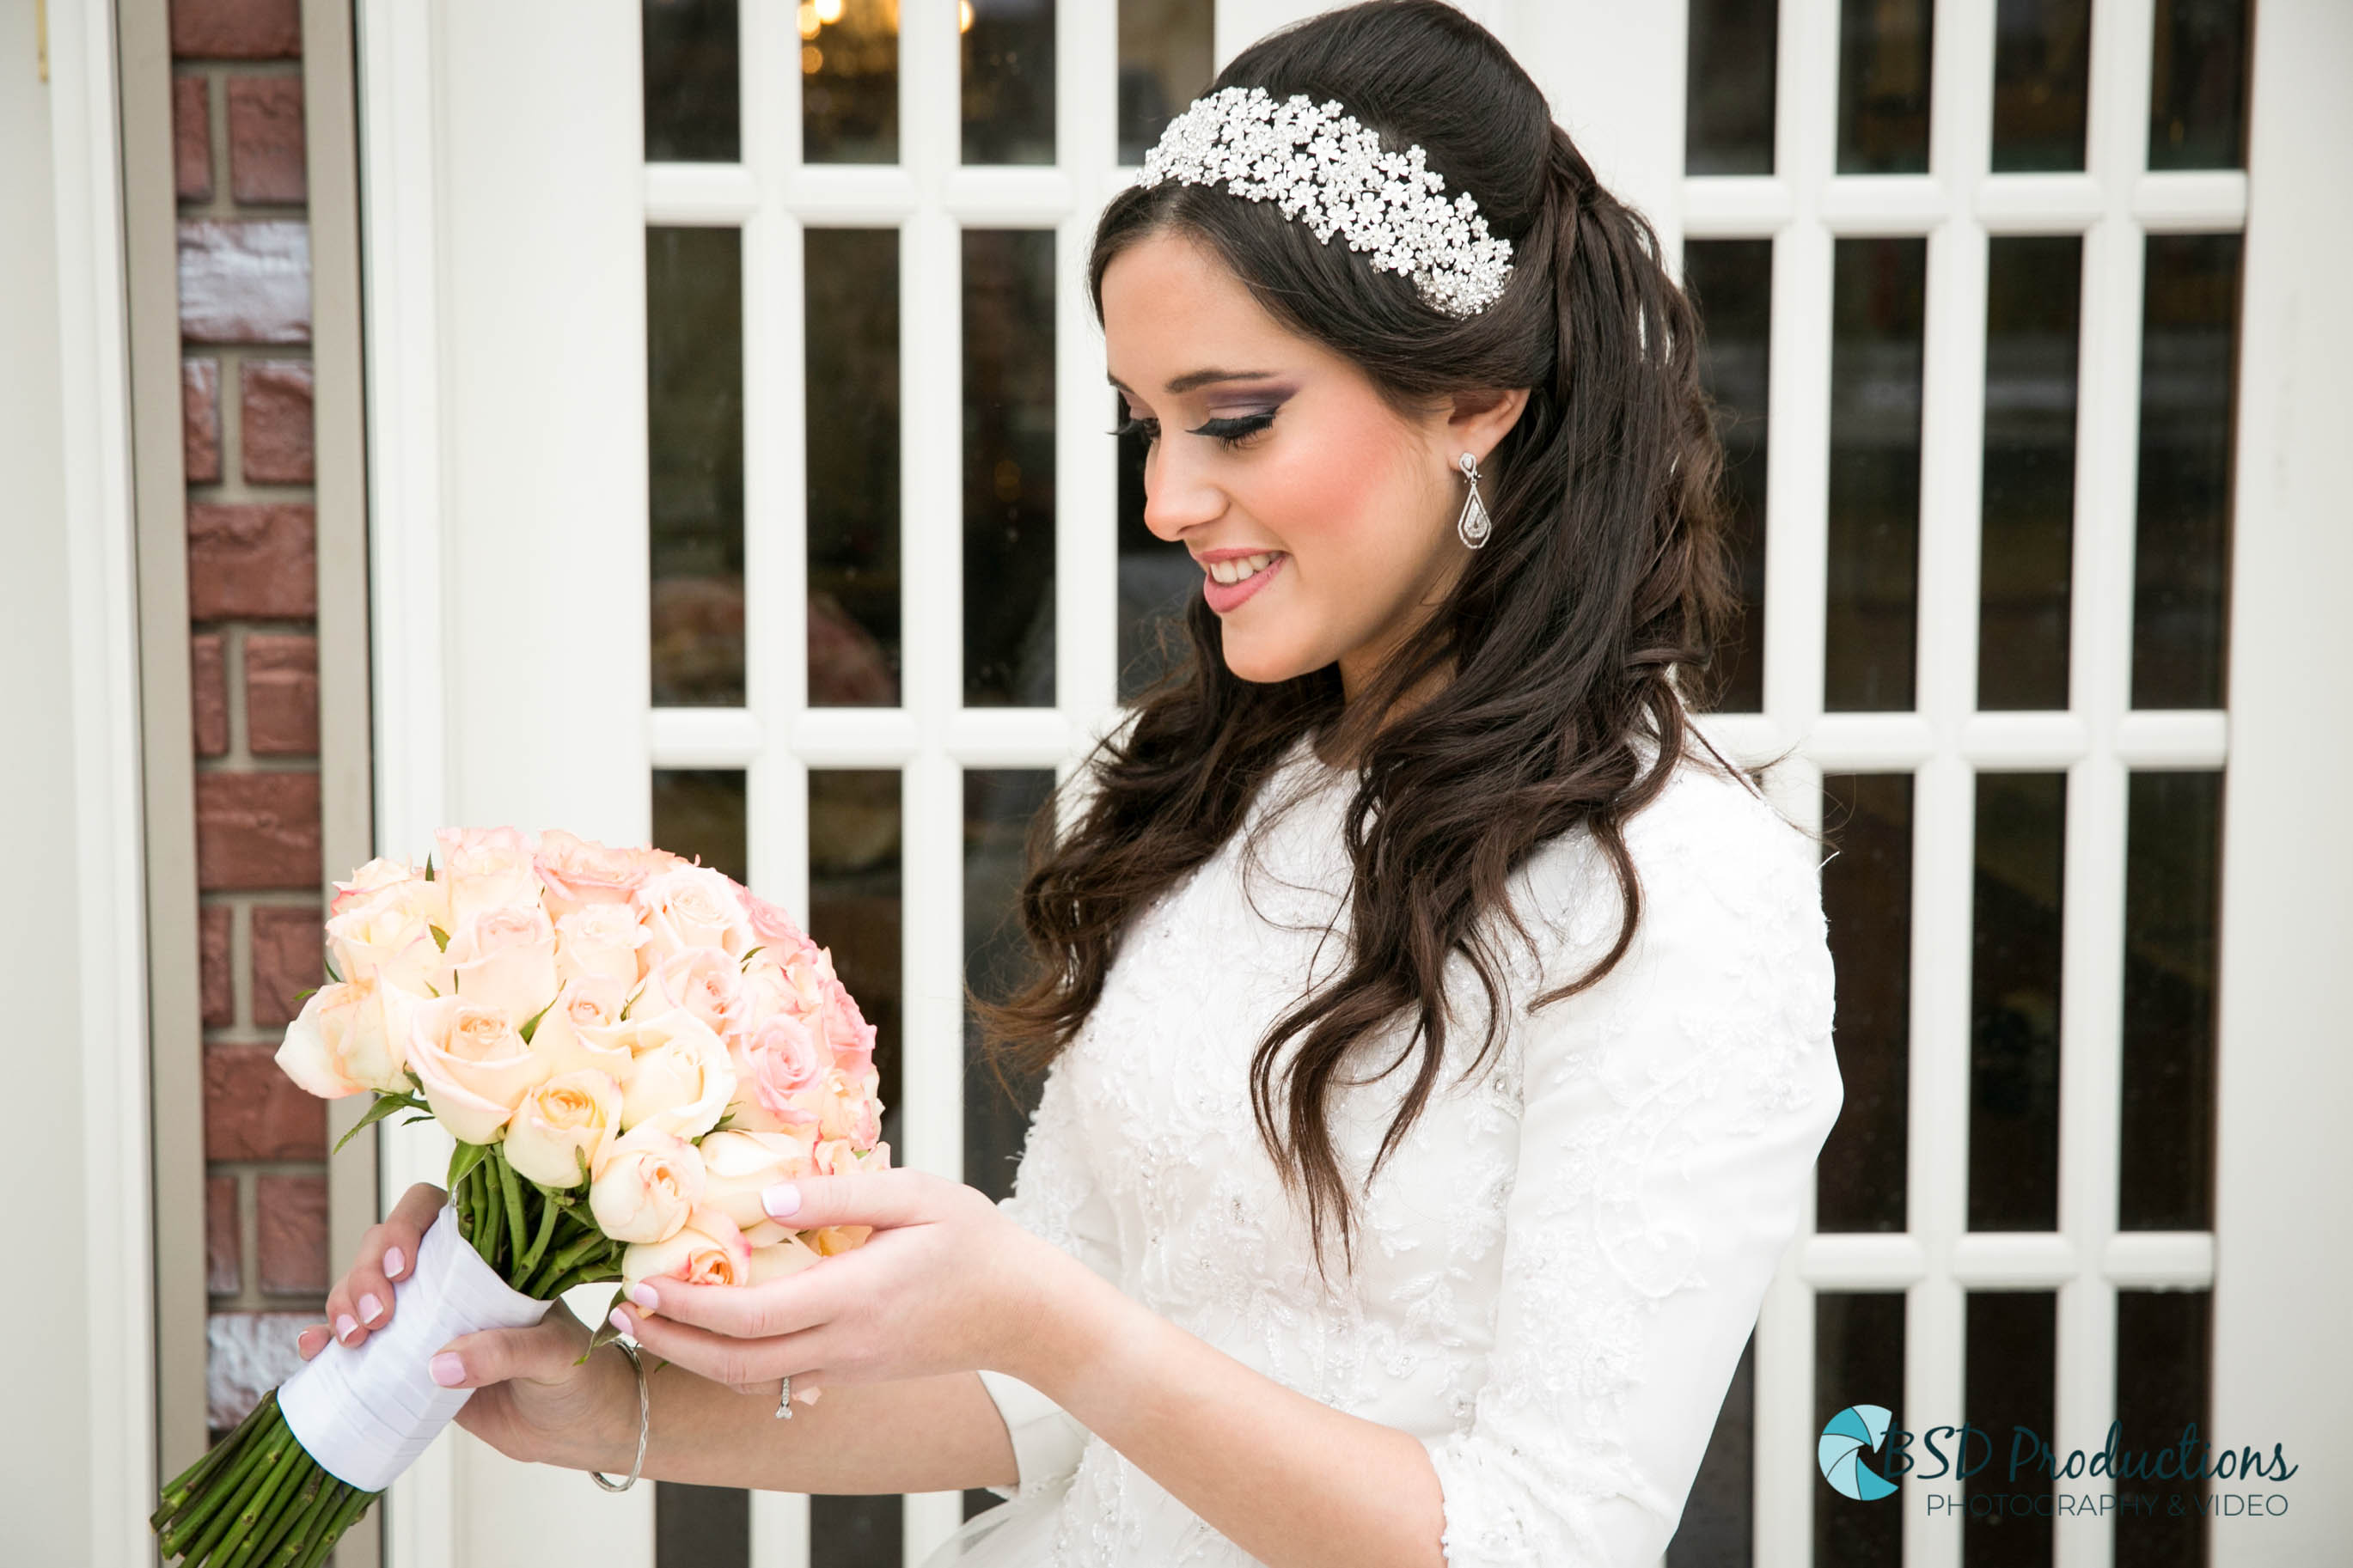 UH5A0214 Wedding – BSD Productions Photography